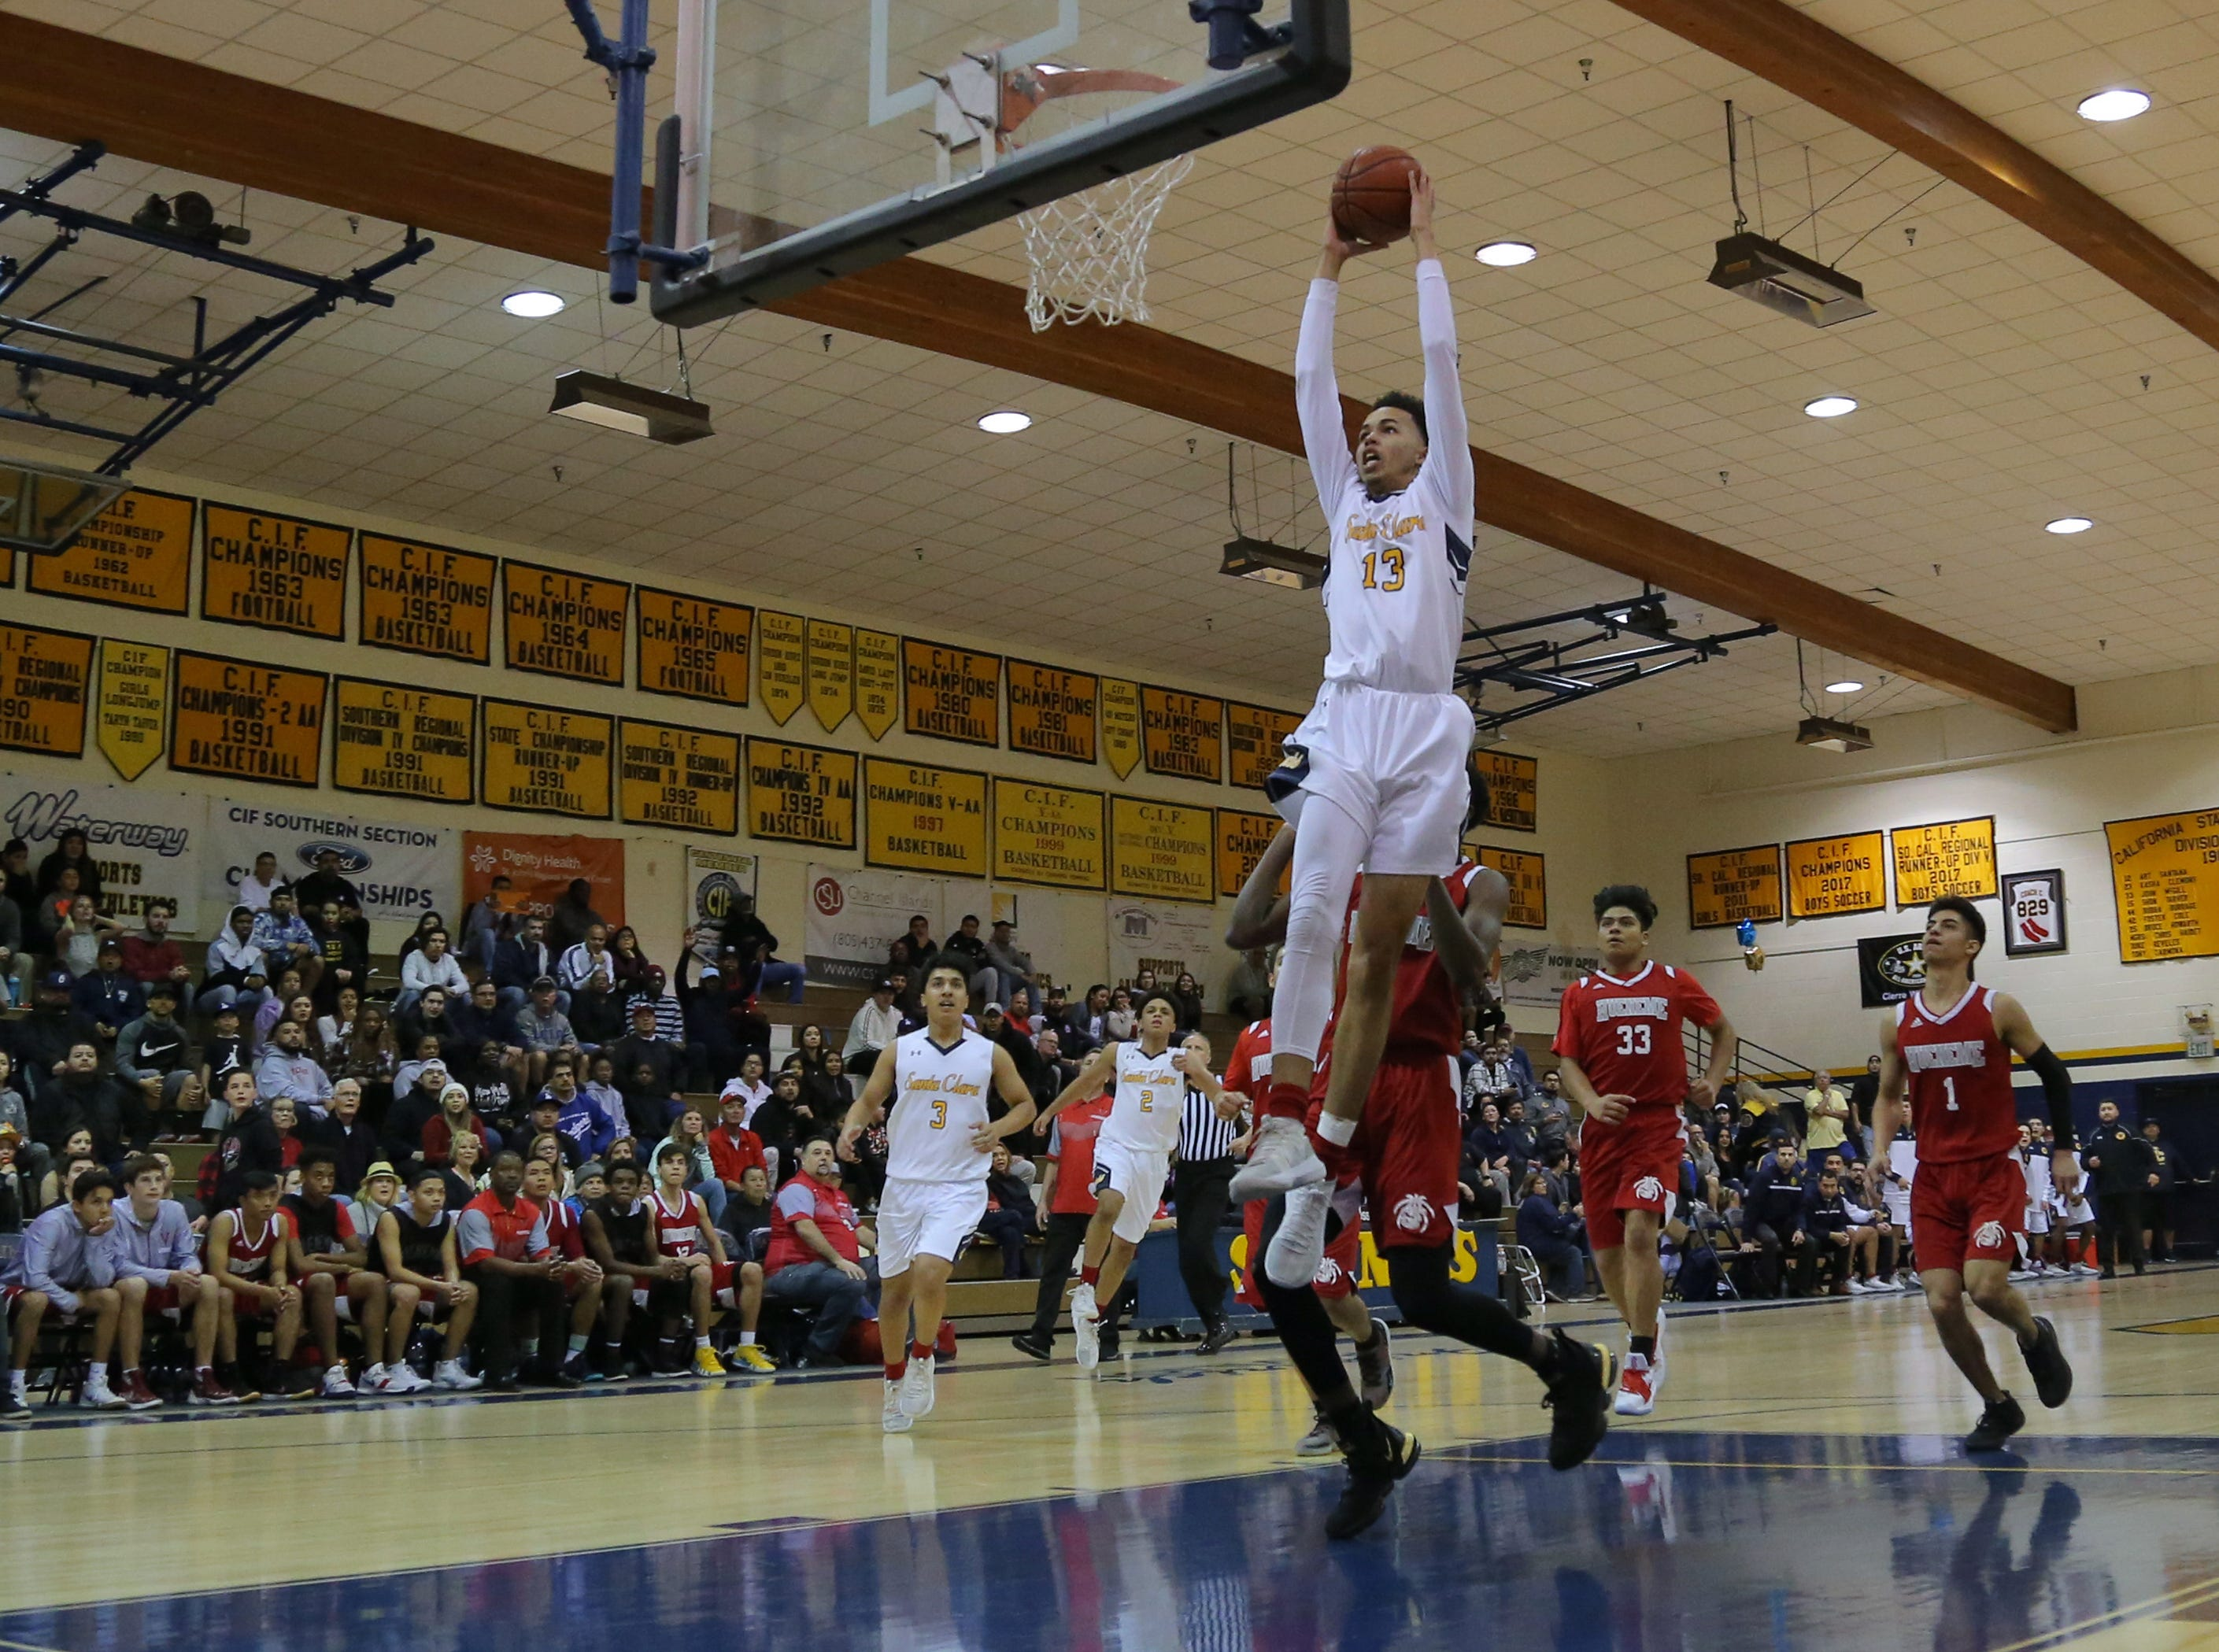 Santa Clara's Nick Abbott soars to the basket for a dunk during the Saints' 51-37 victory over Hueneme in Saturday's CIF-Southern Section Division 5AA semifinal at Santa Clara High.